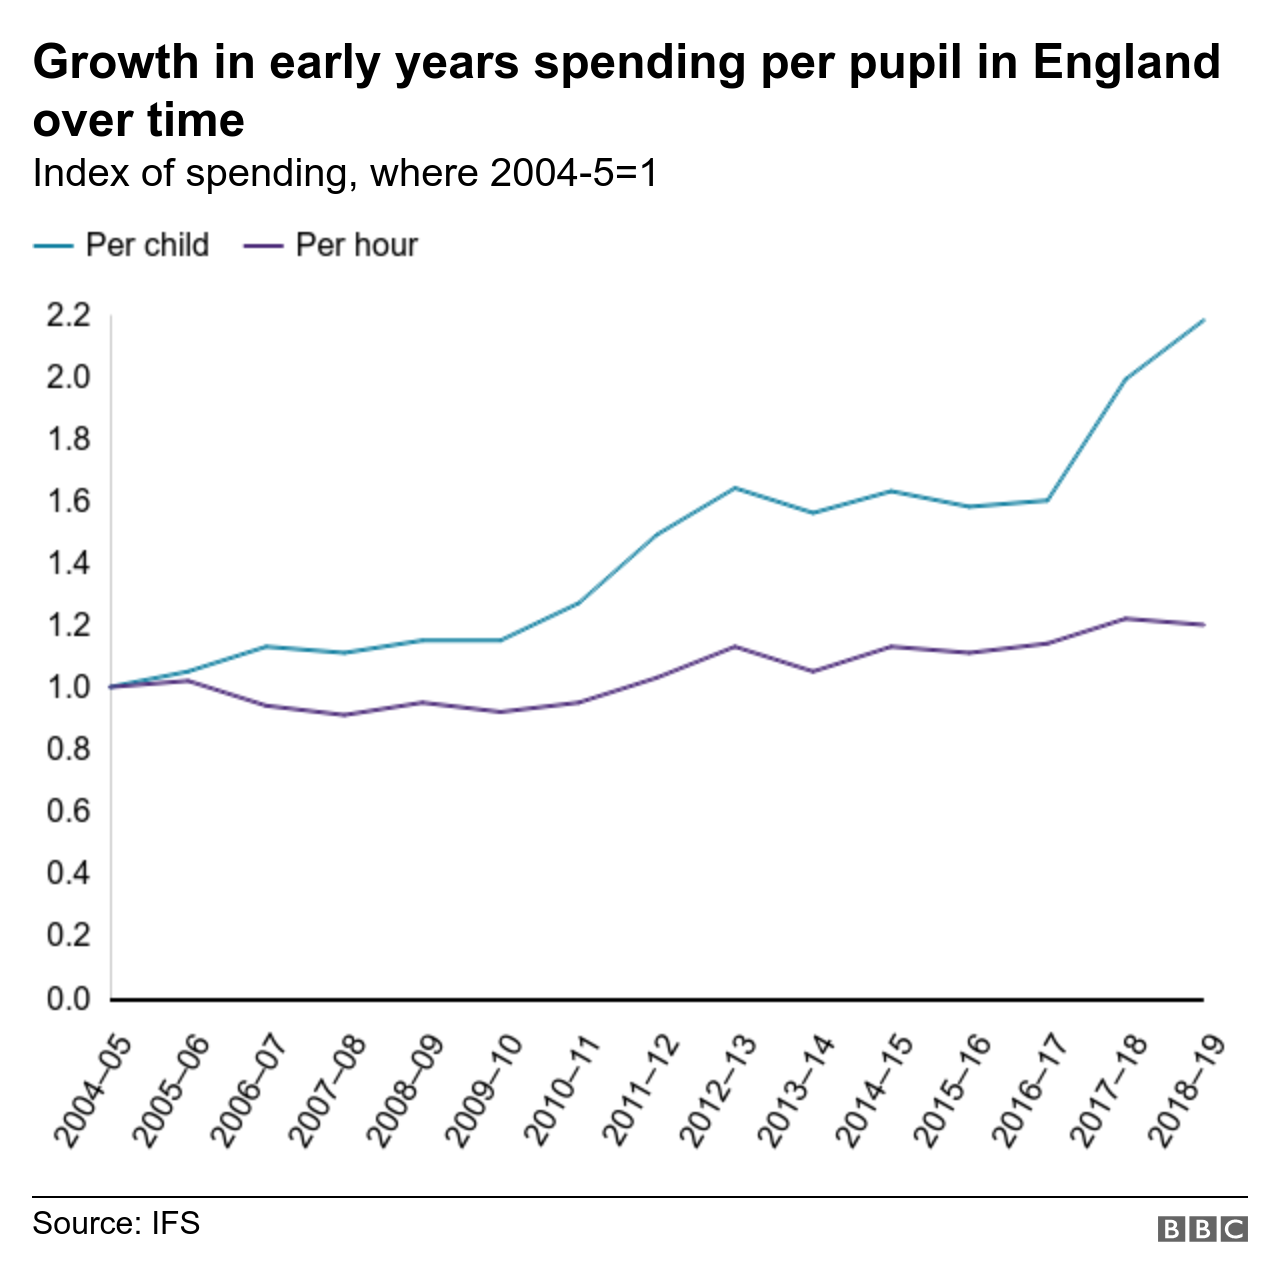 Early years spending